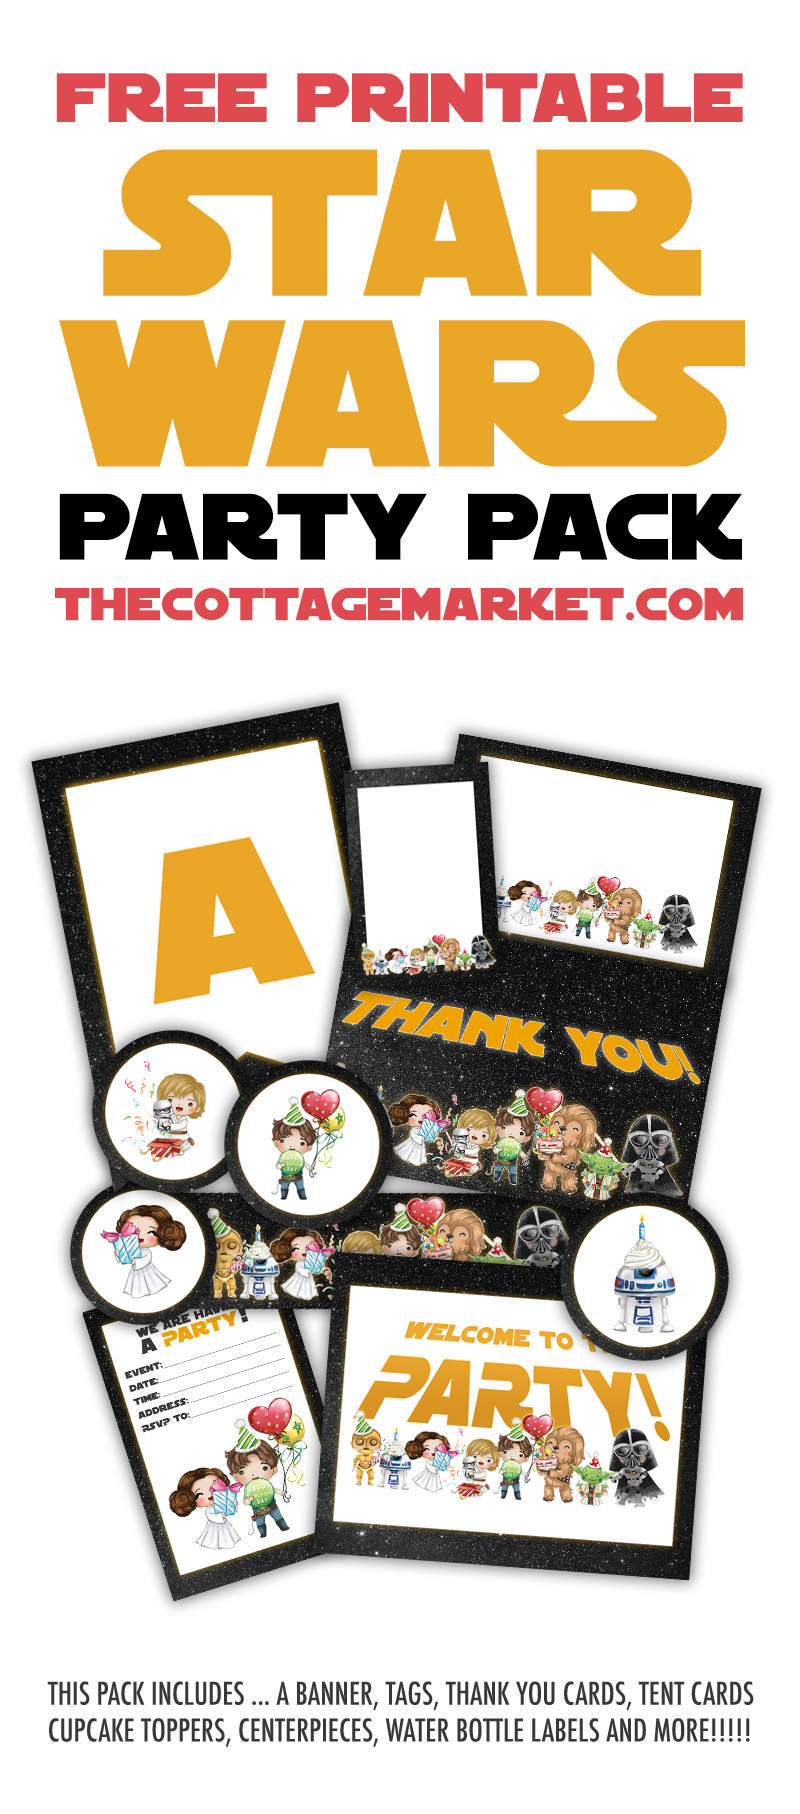 graphic about Printable Star Wars Images identify Free of charge Printable Star Wars Social gathering Pack - The Cottage Sector